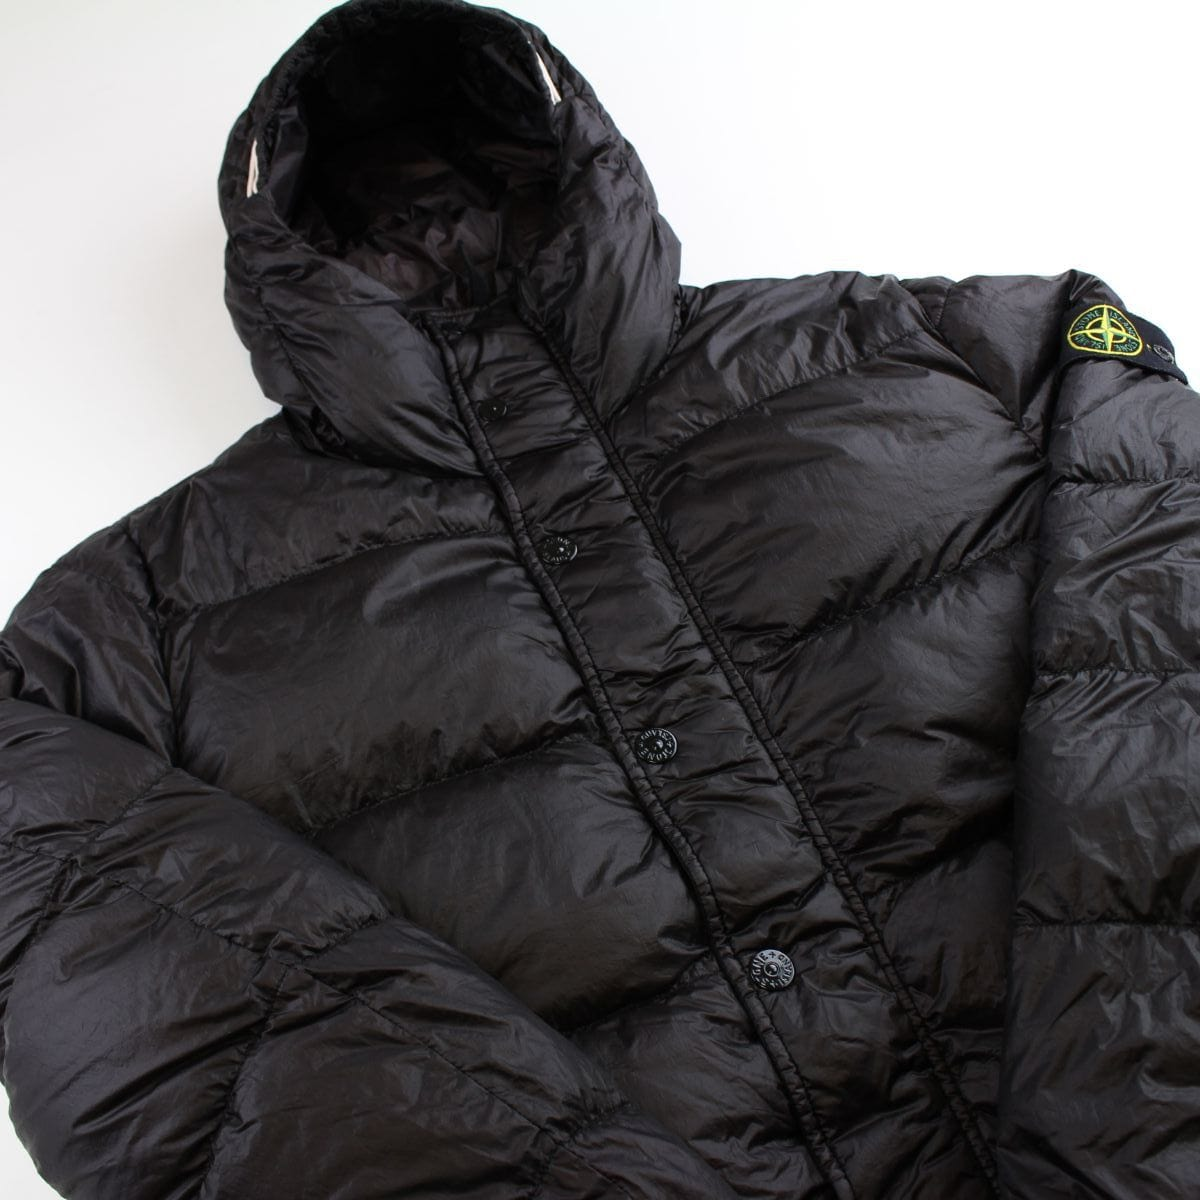 stone island brown down jacket - SaruGeneral